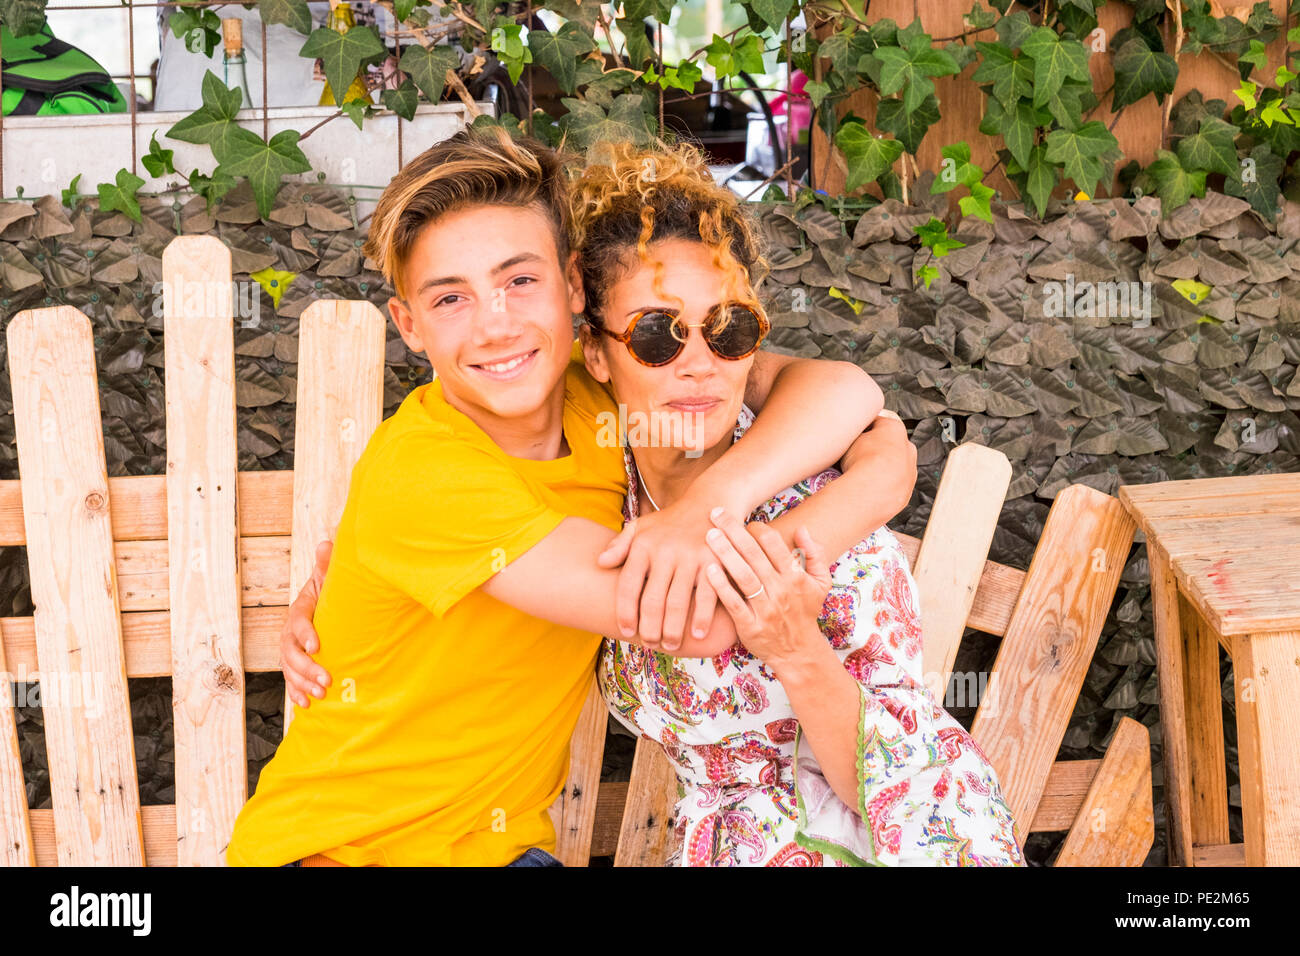 mother and son hugging with smile and enjoy leisure time together with love. family teenager boy 14 years old and mom 43 have fun sitting on a wodd be - Stock Image